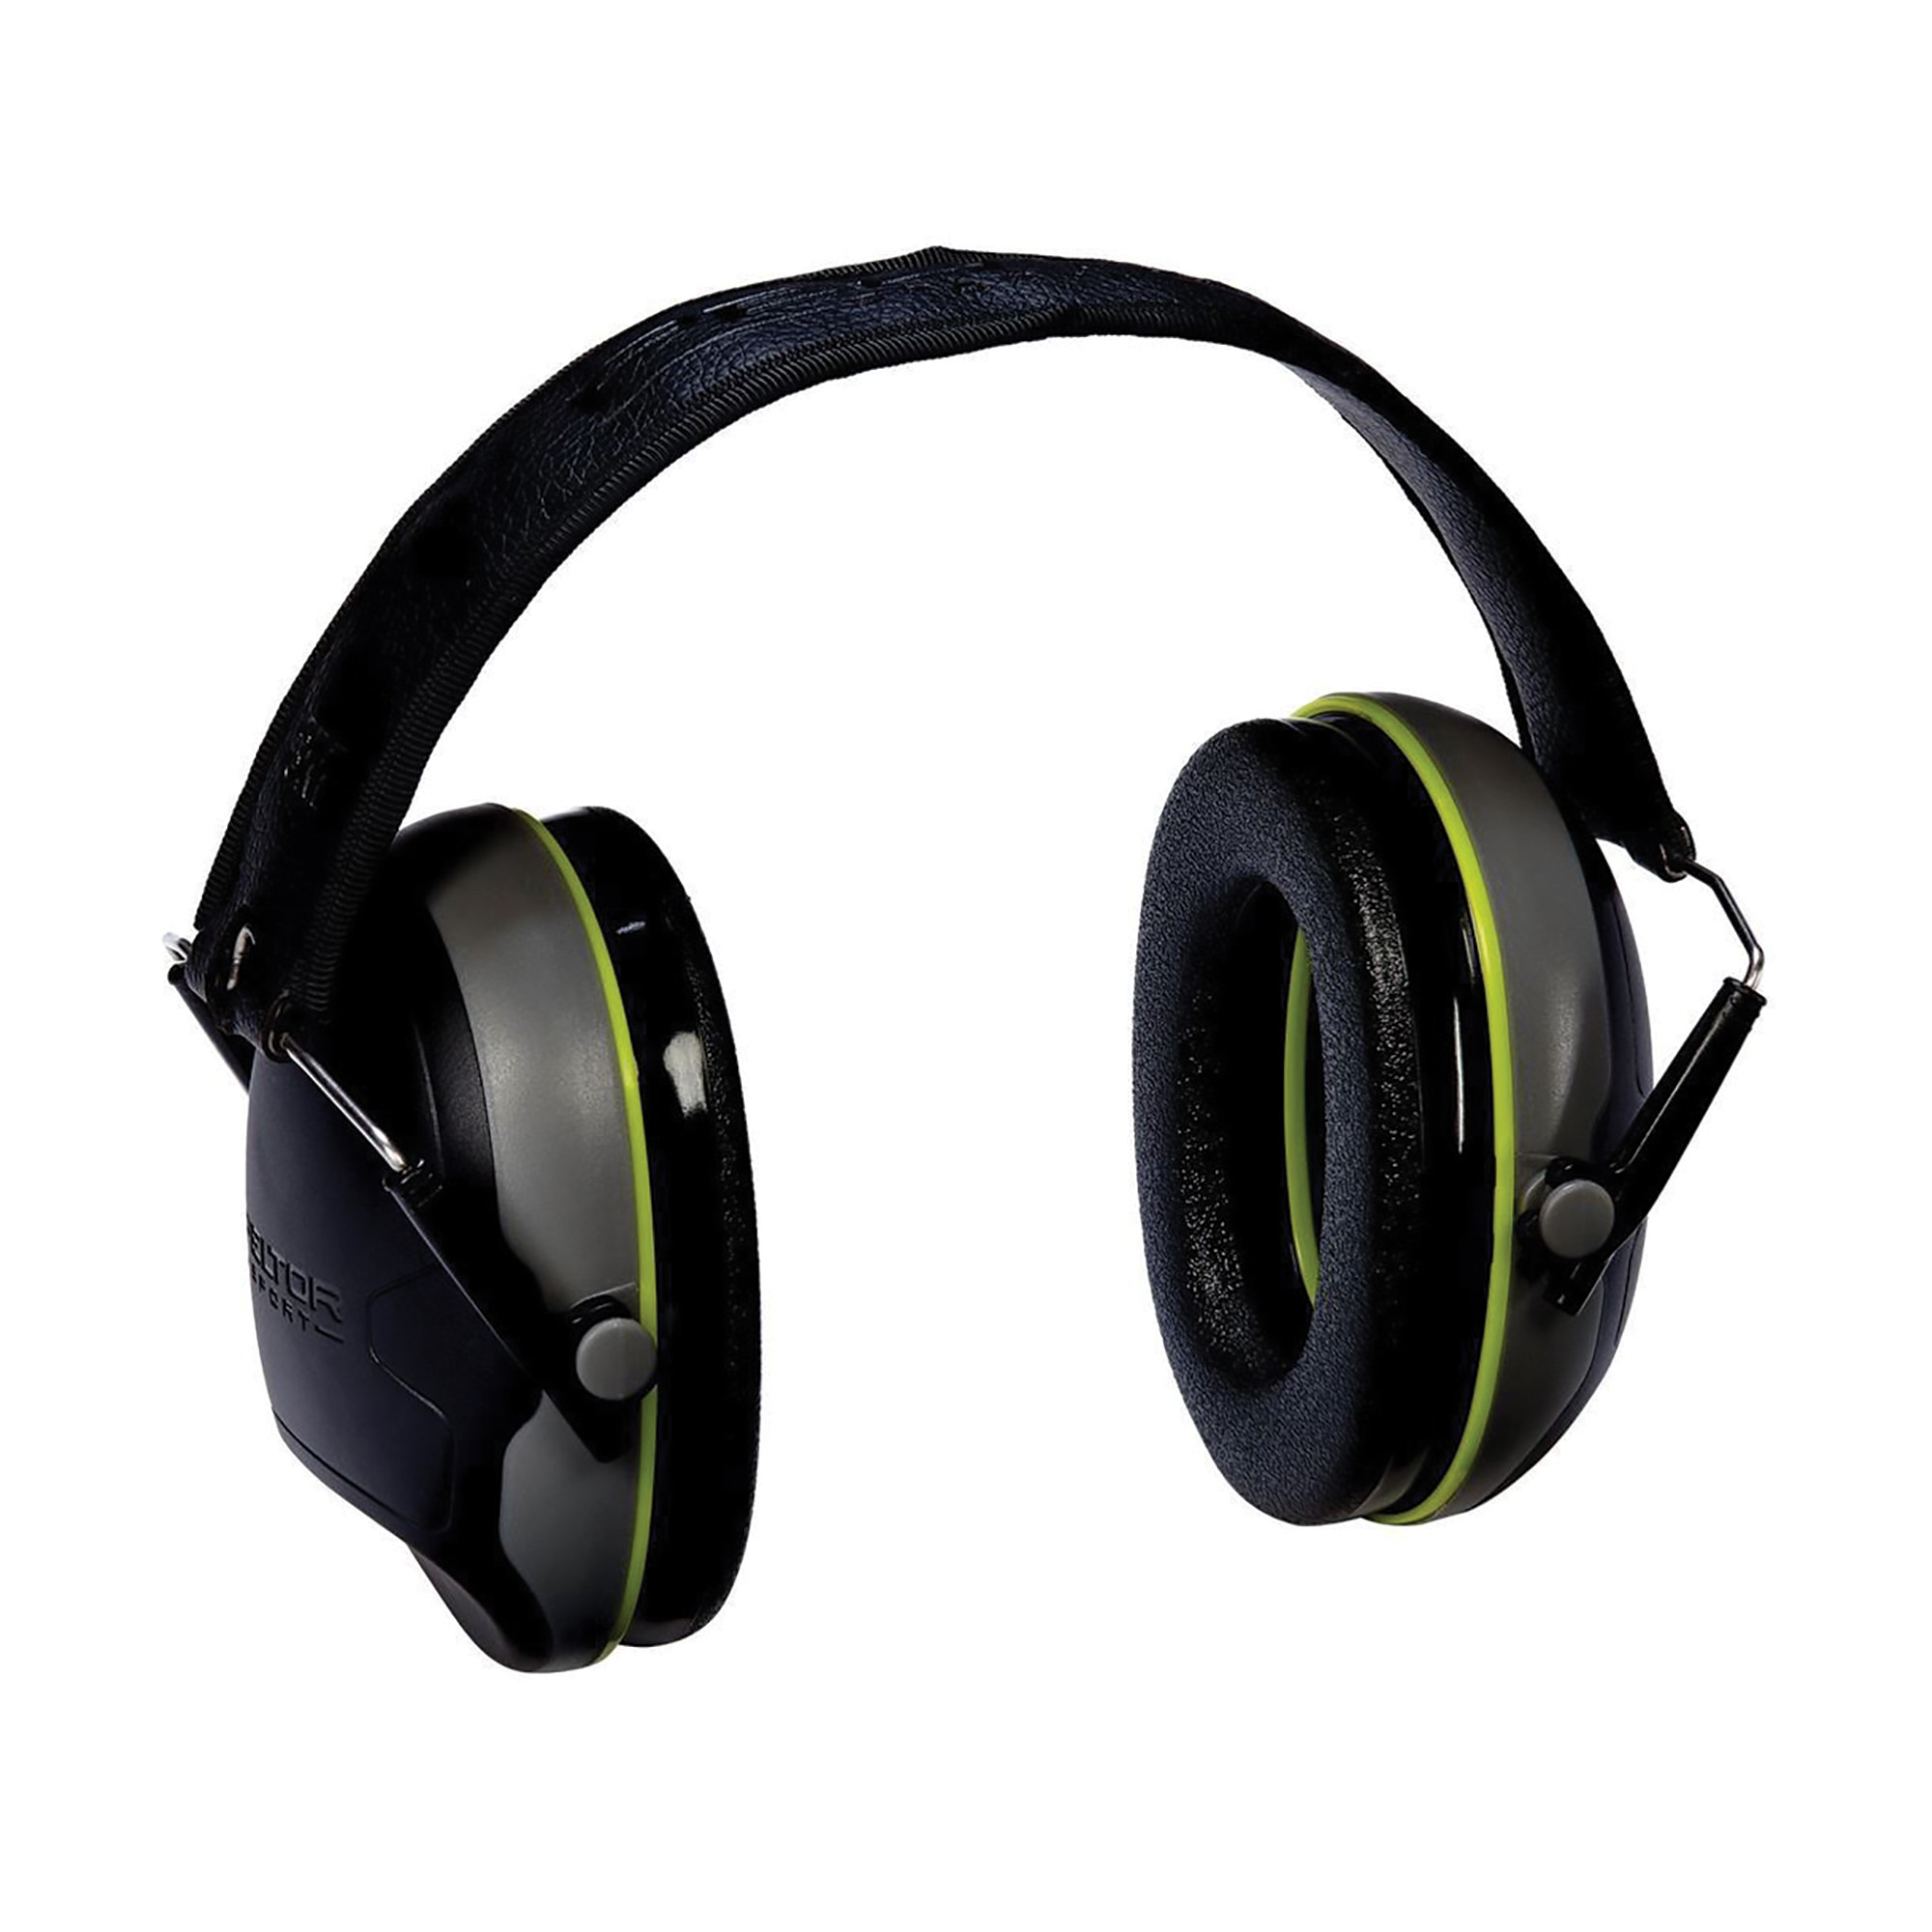 """Featuring low-profile cups with cut-outs"""" the Shotgunner earmuffs are ideal for use with rifles and shotguns. The fully adjustable headband is ergonomically engineered to reduce pressure points."""